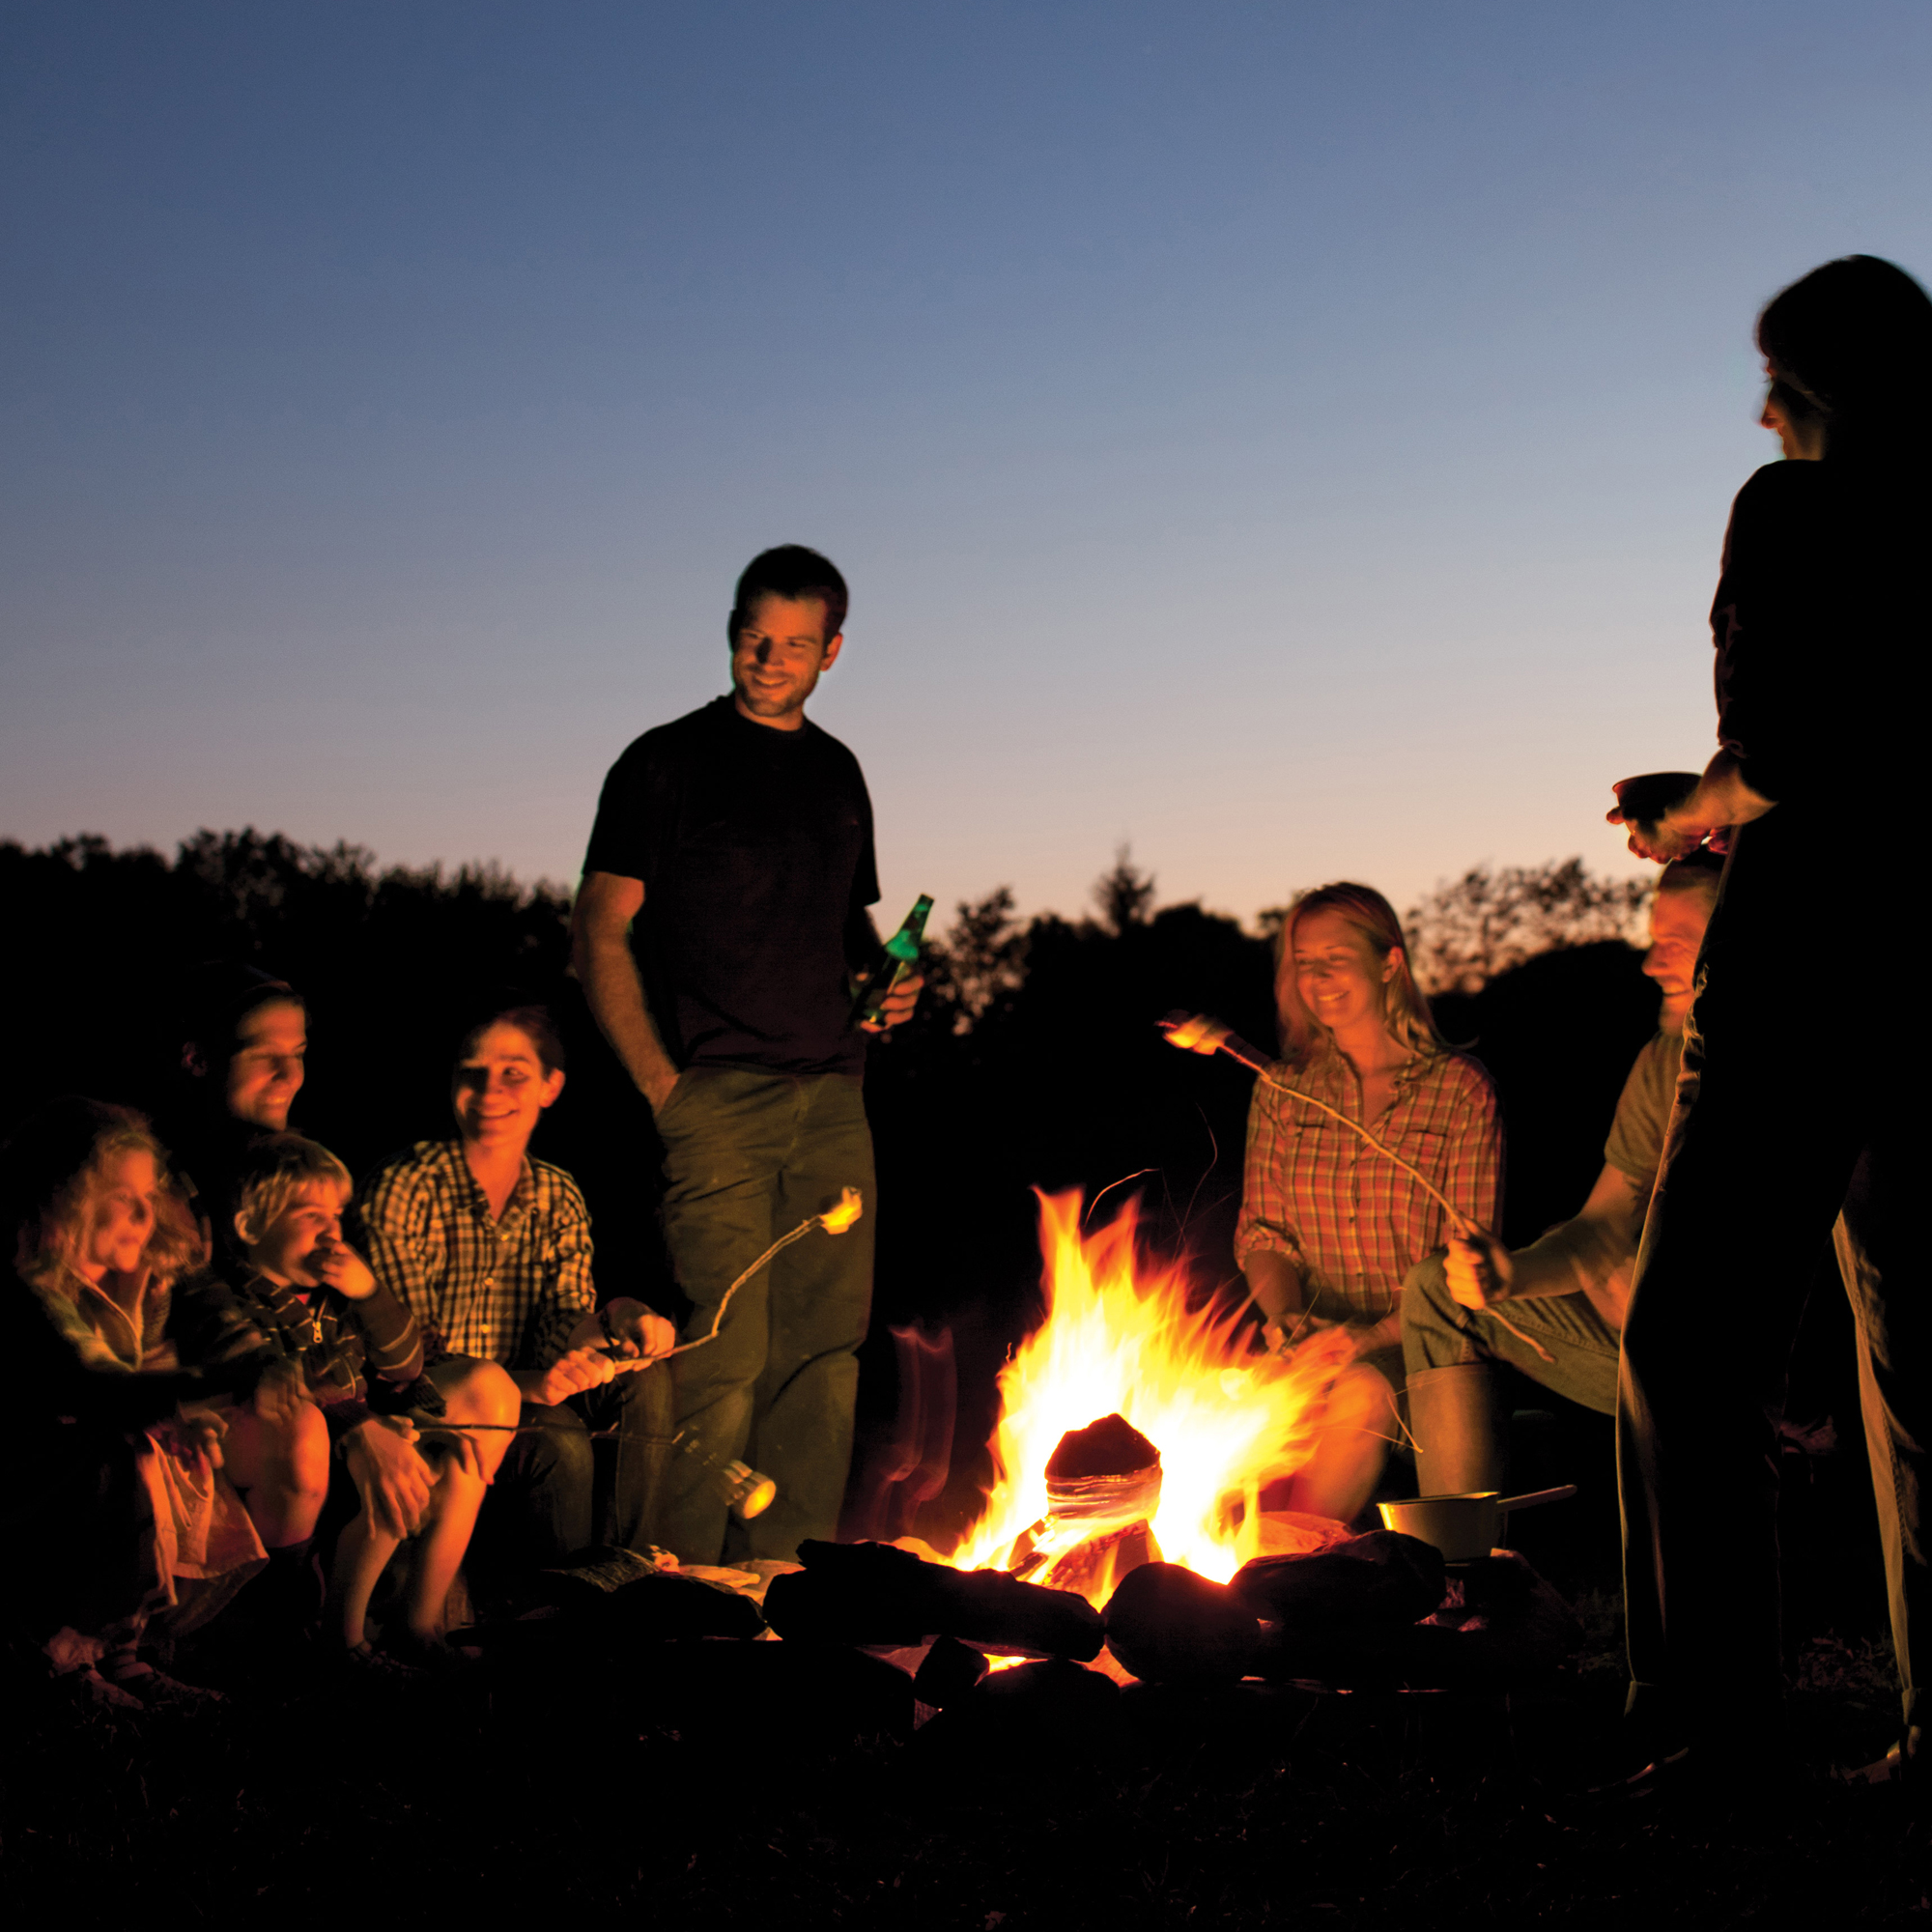 group of people sitting around campfire roasting marshmallows